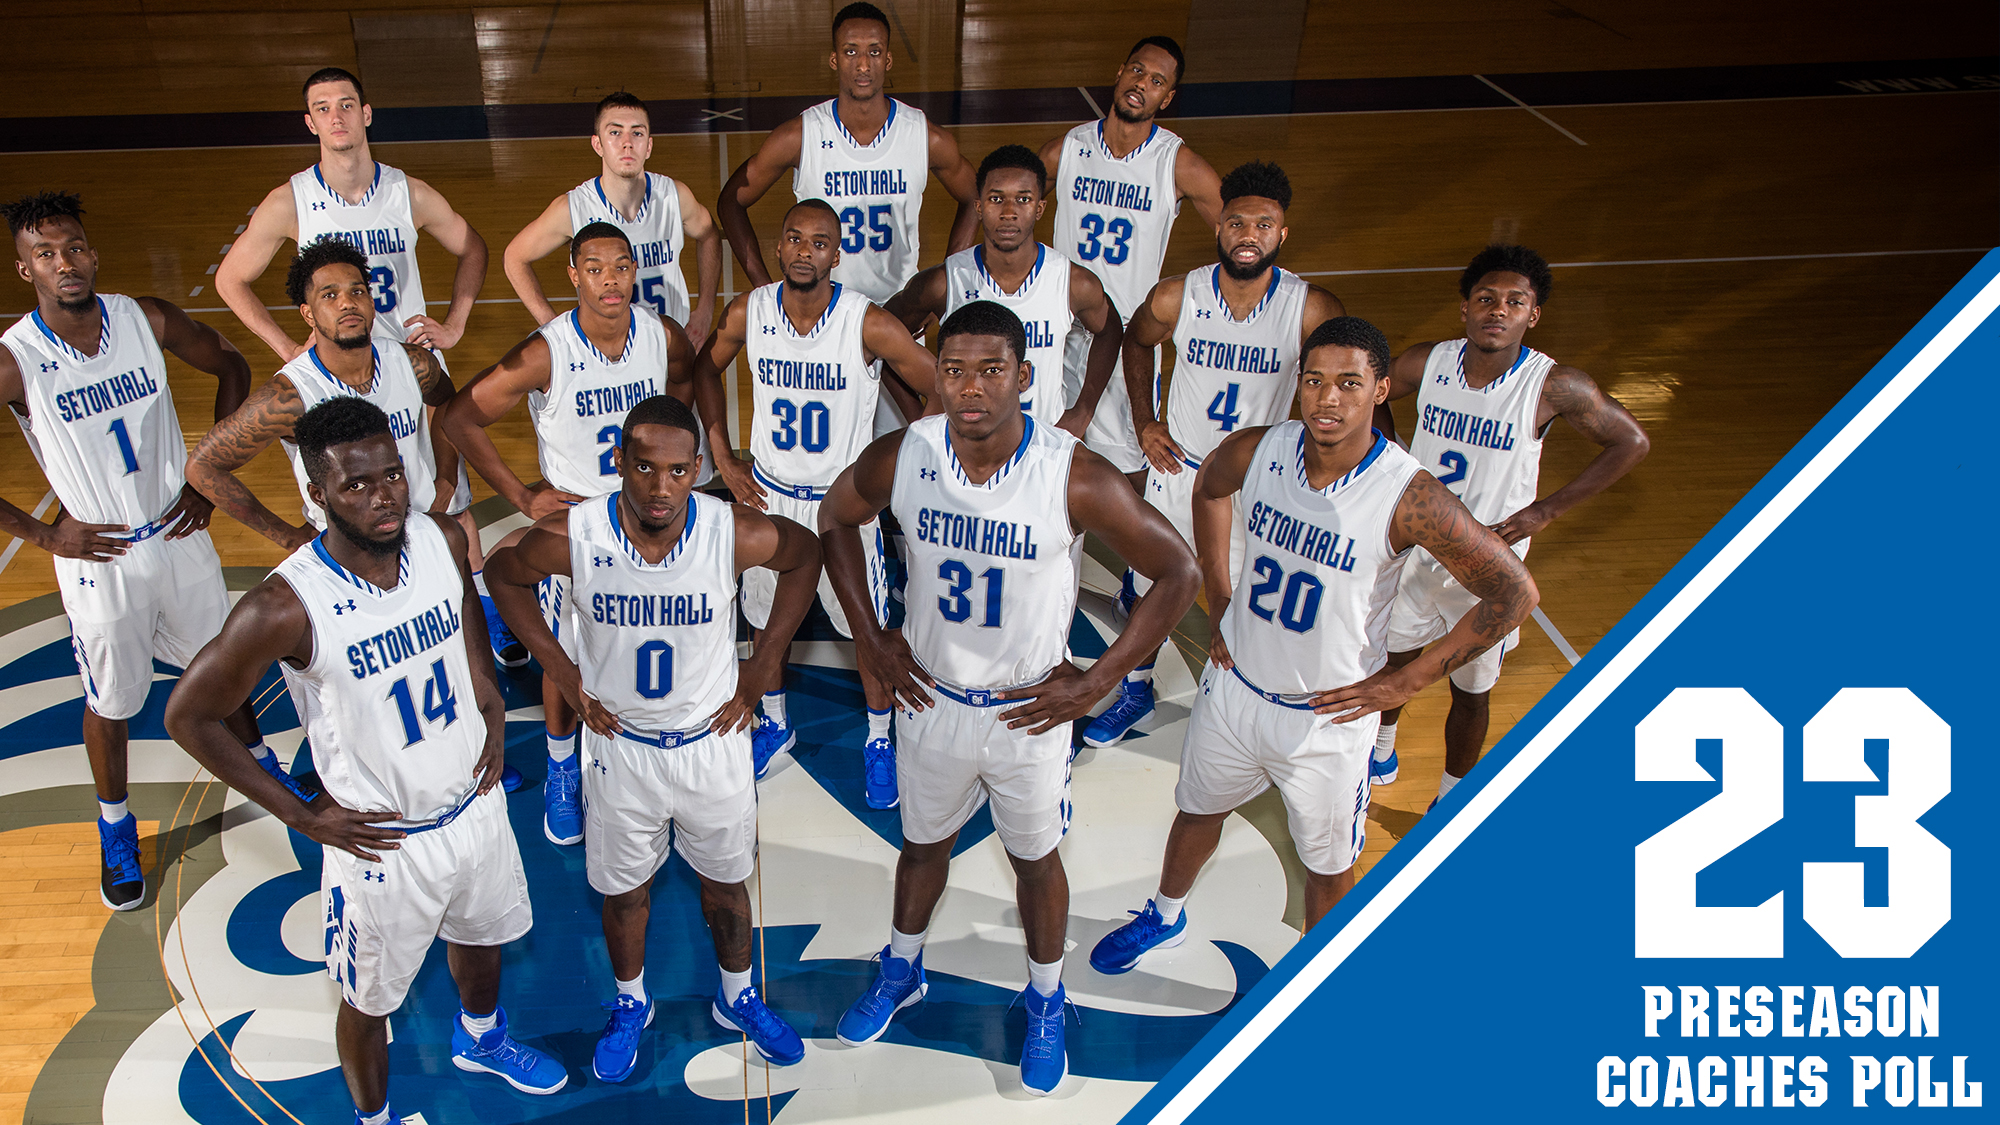 pirates start 2017-18 ranked no. 23 in coaches poll - seton hall